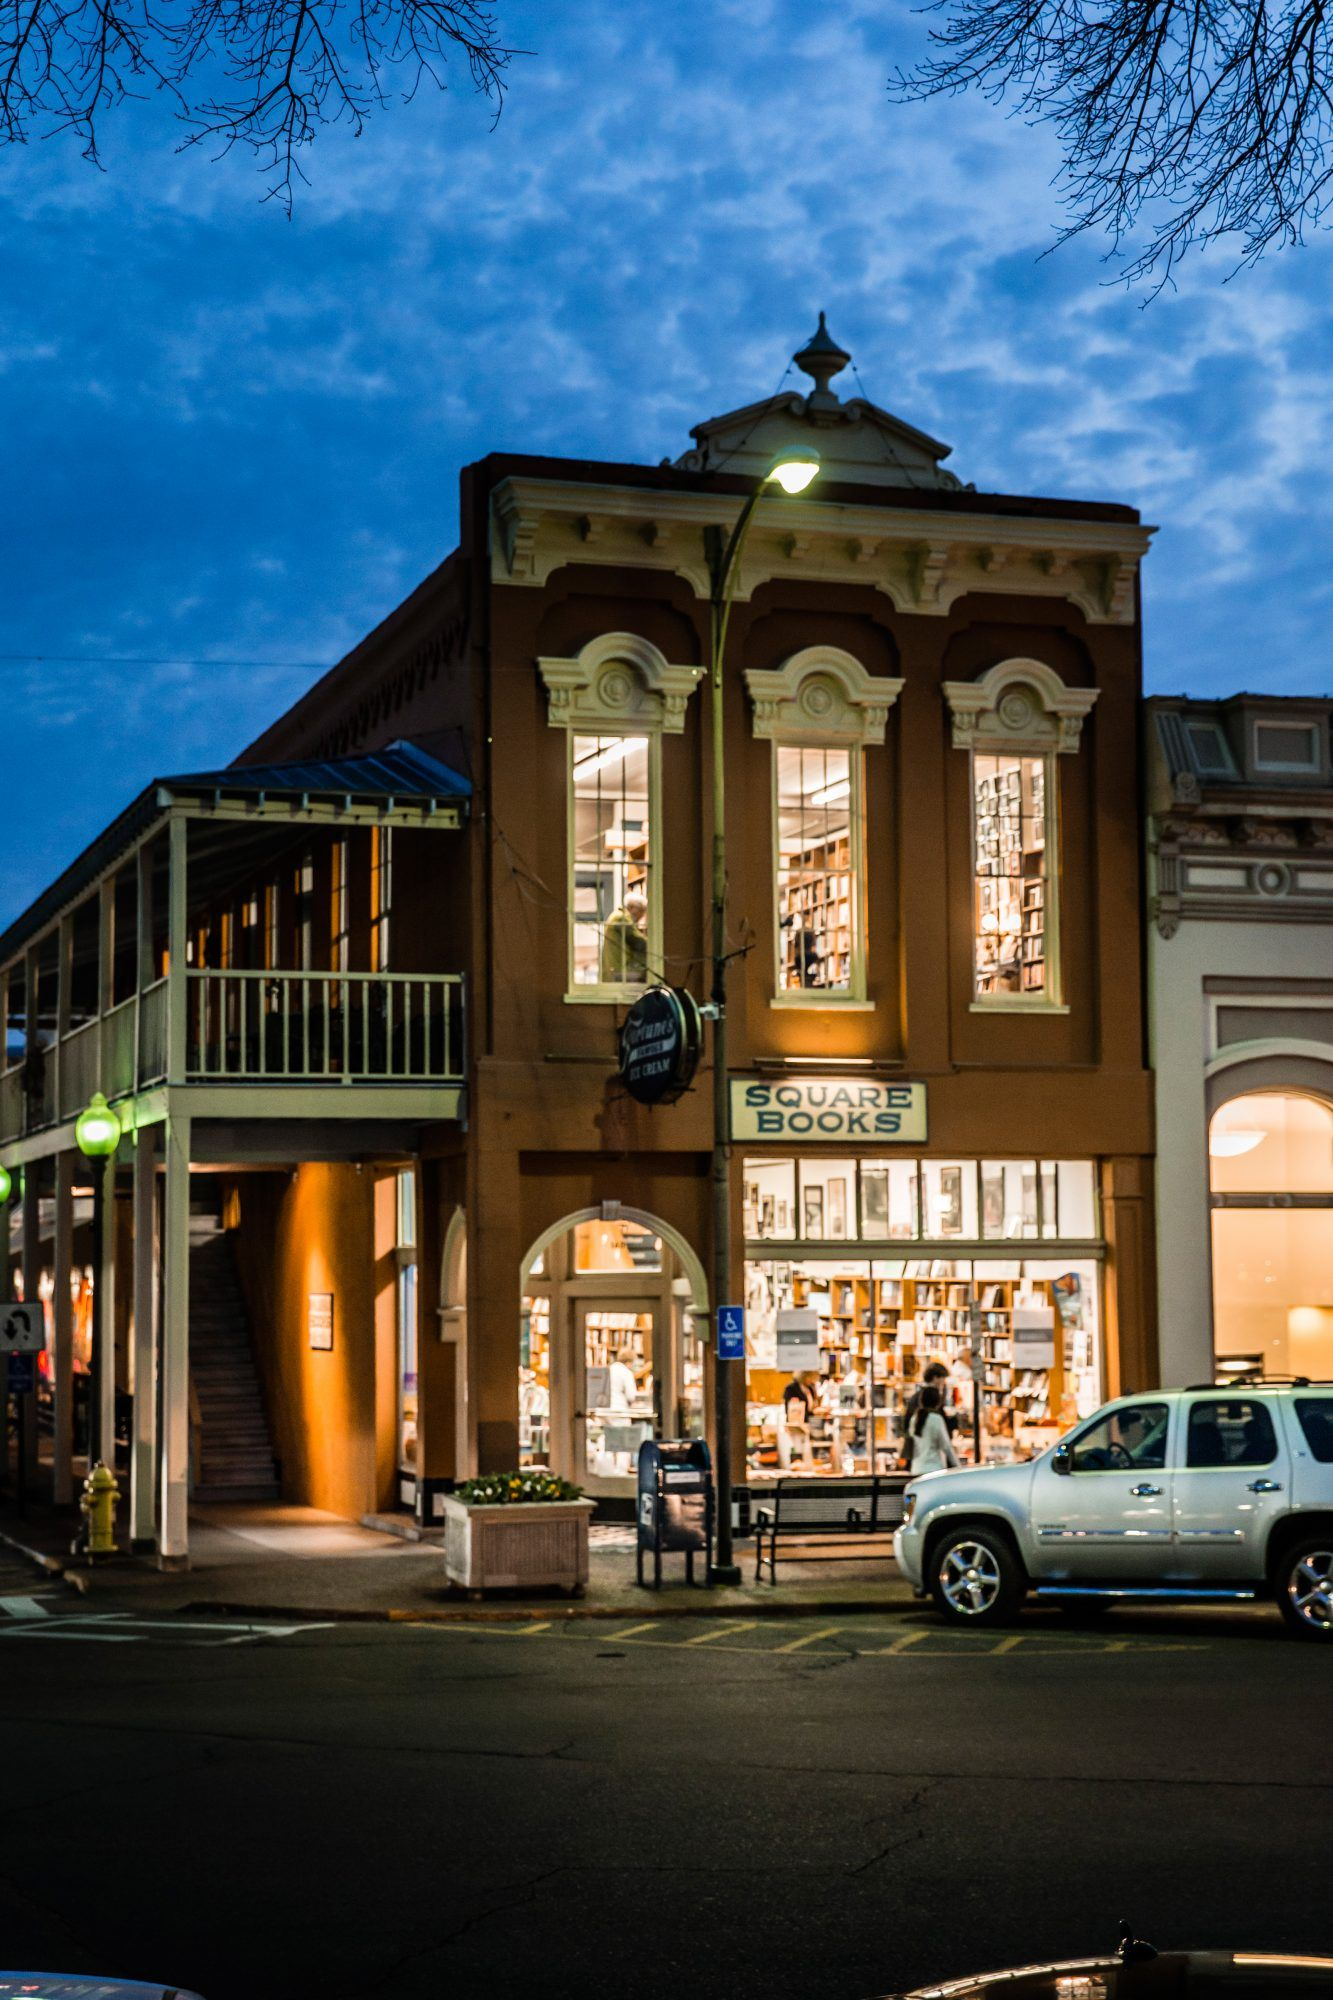 25 most festive small towns in the south for a charming